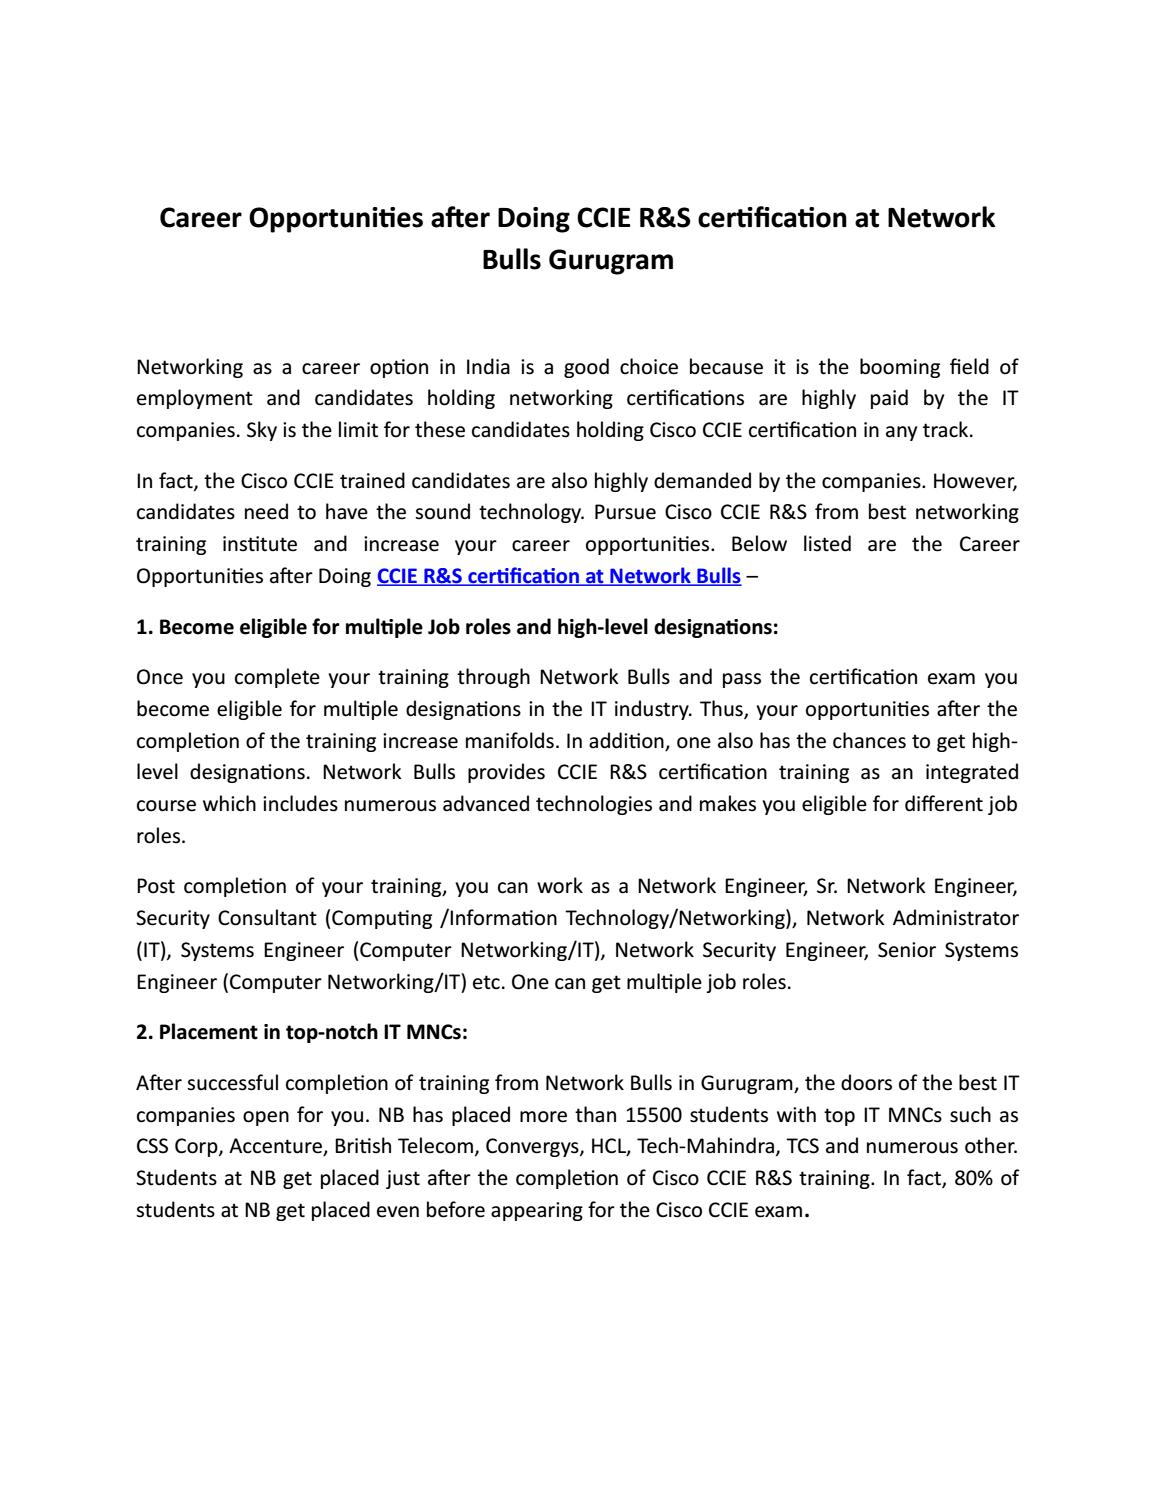 Career Opportunities After Doing Ccie Rs Certification At Network